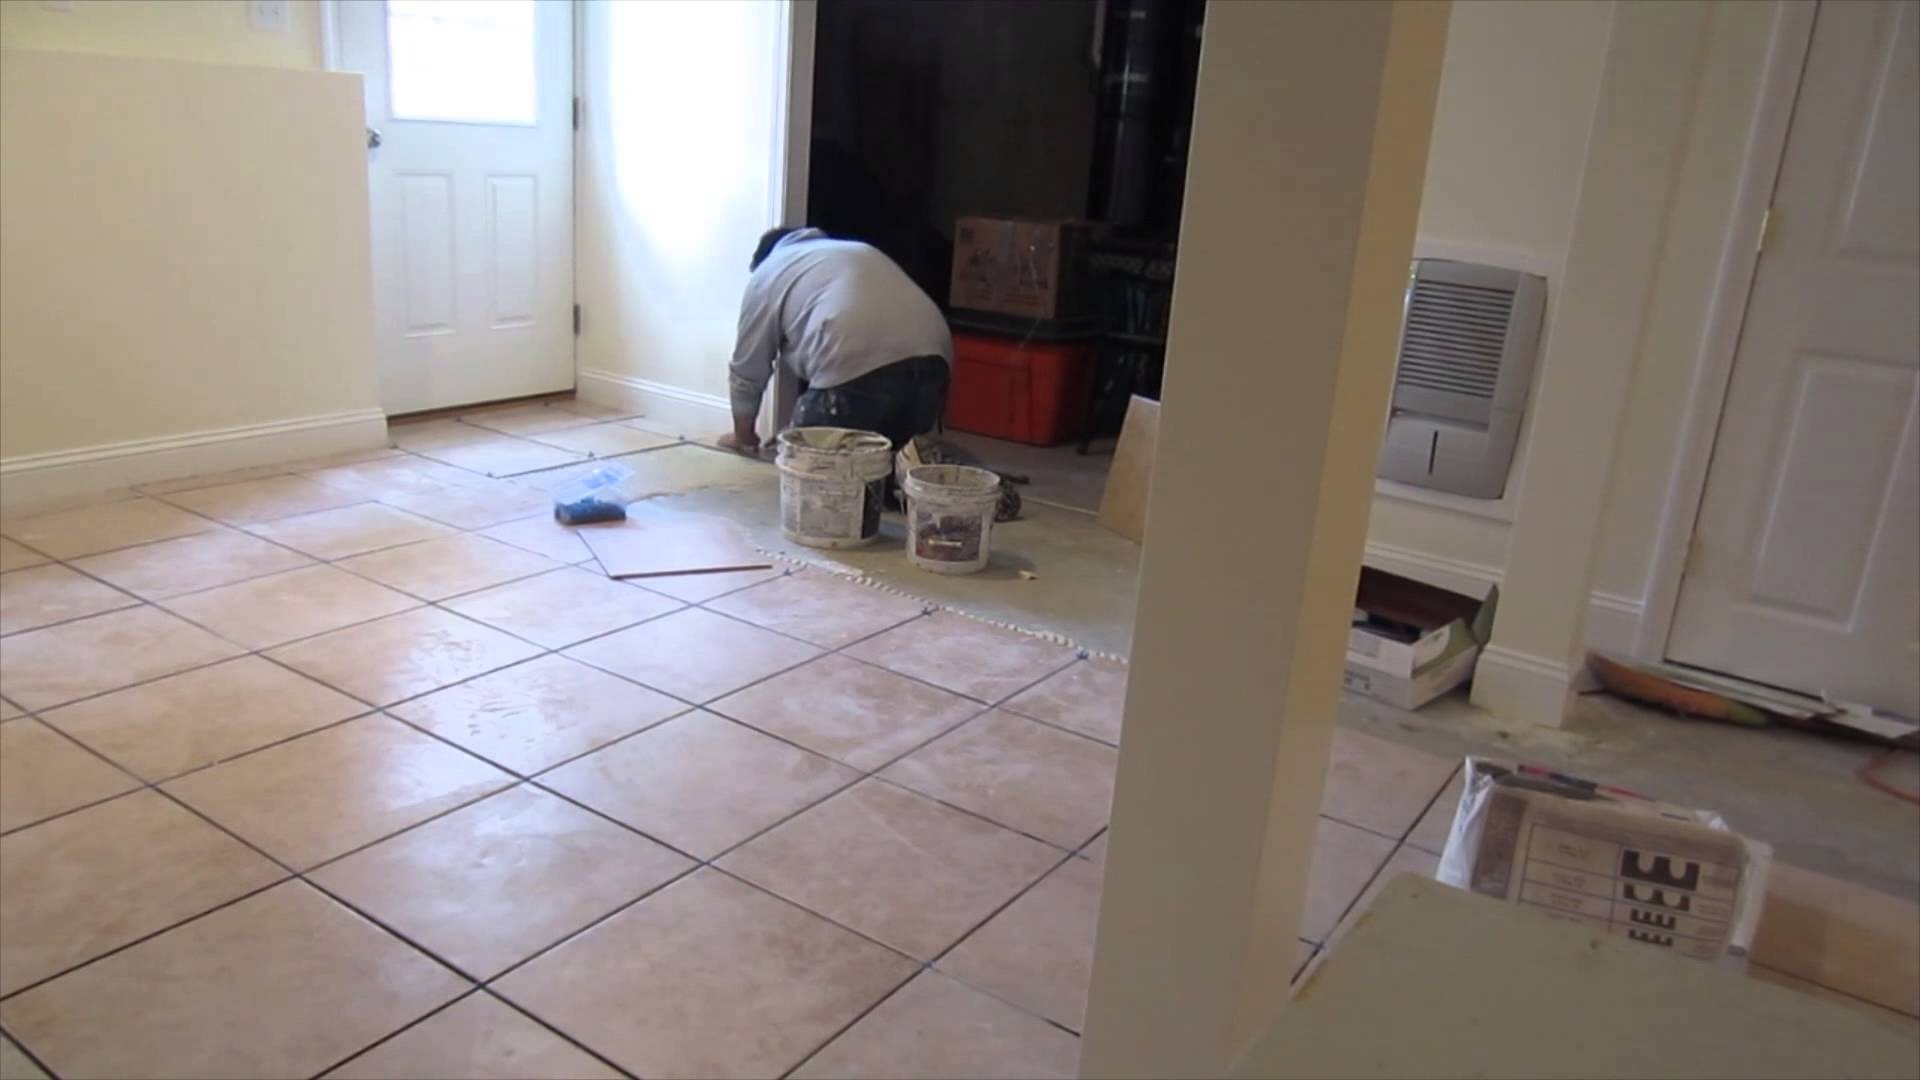 Tile Floor Installers Near Me